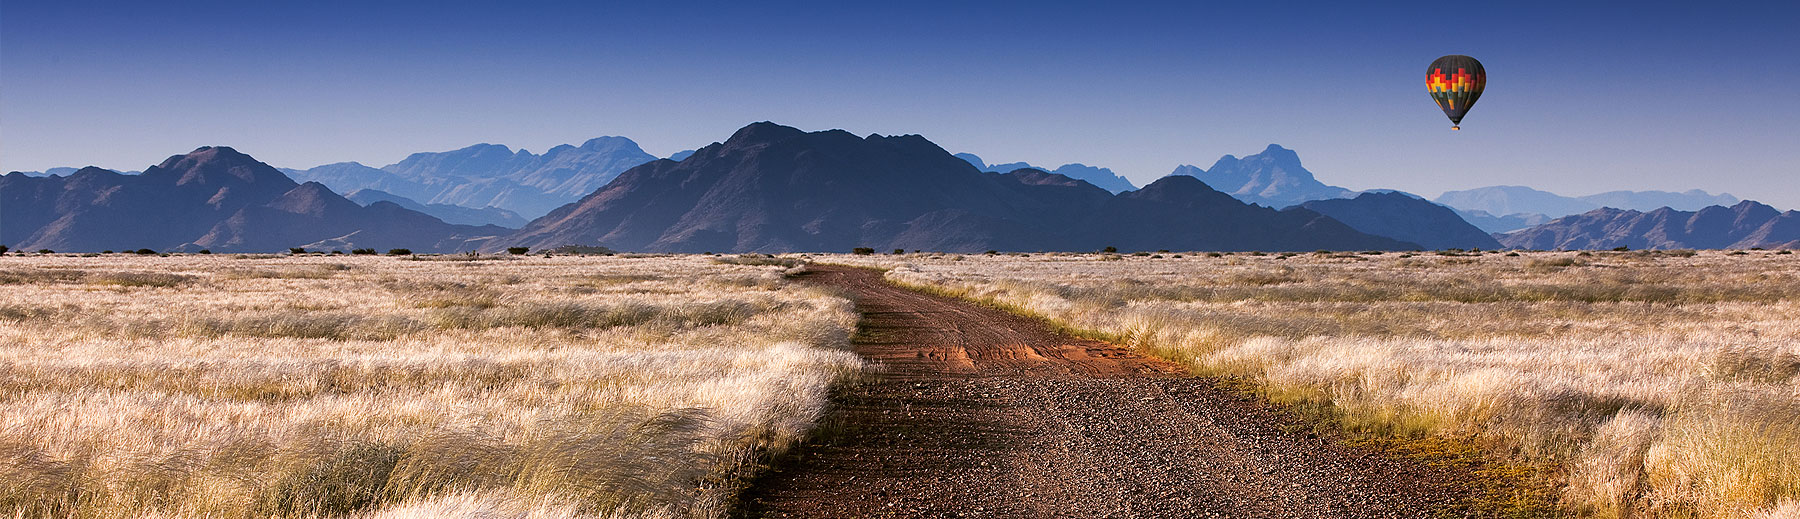 A panoramic view of a dirt road through a grass plain with a colourful hot air balloon floating in the distance near the mountains.